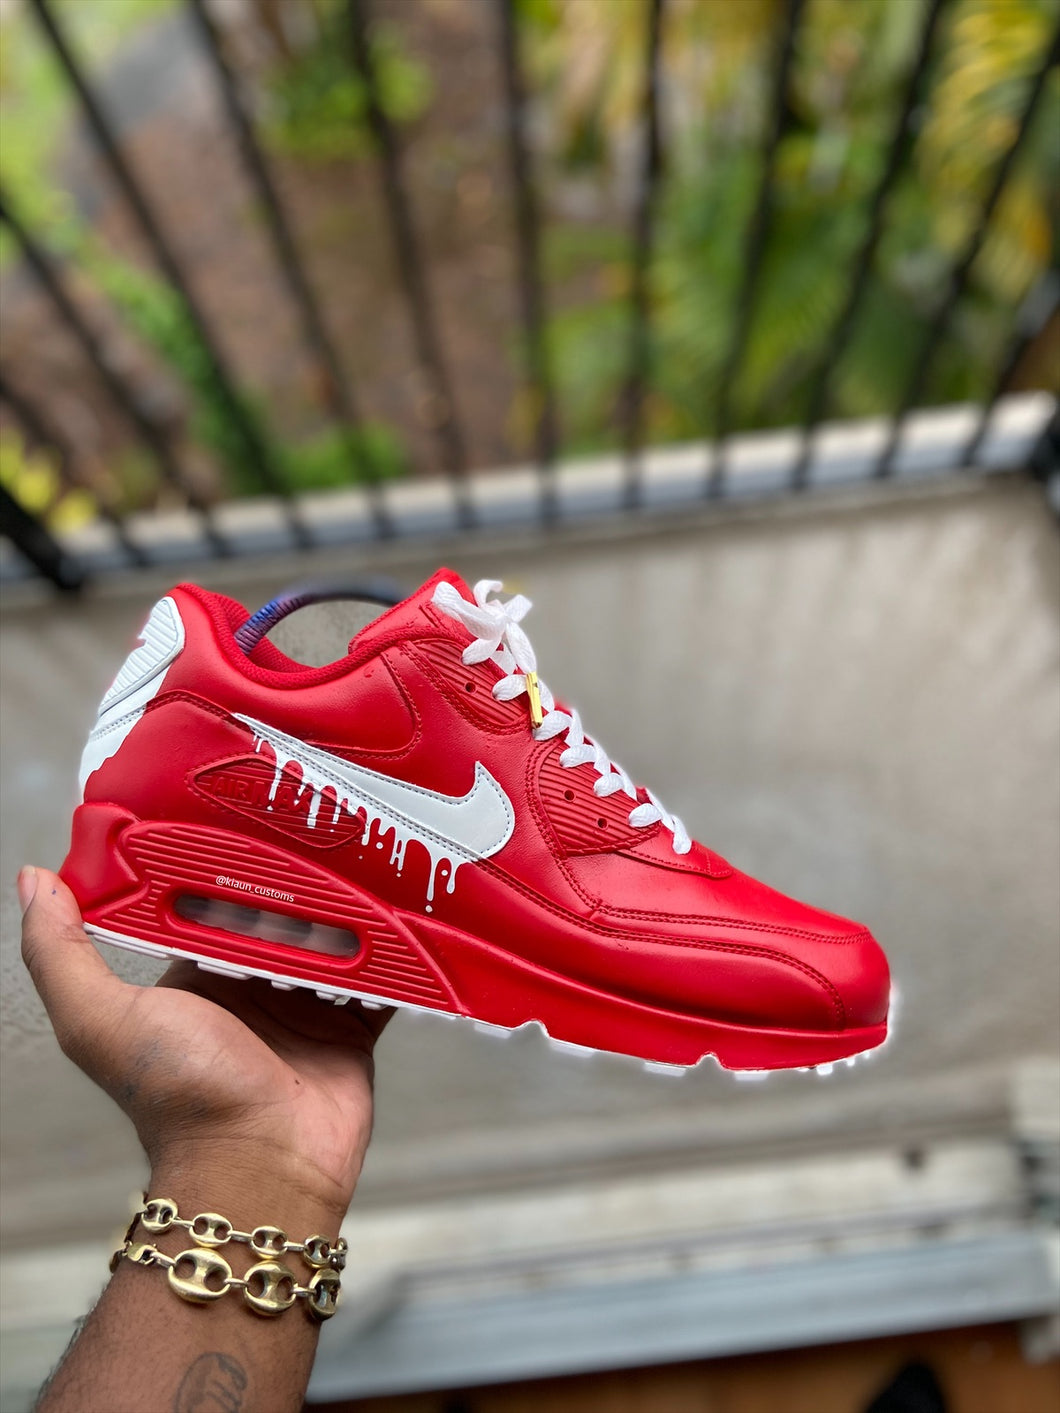 Custom Red and White Drip Airmax 90. - Kiaun's Customs